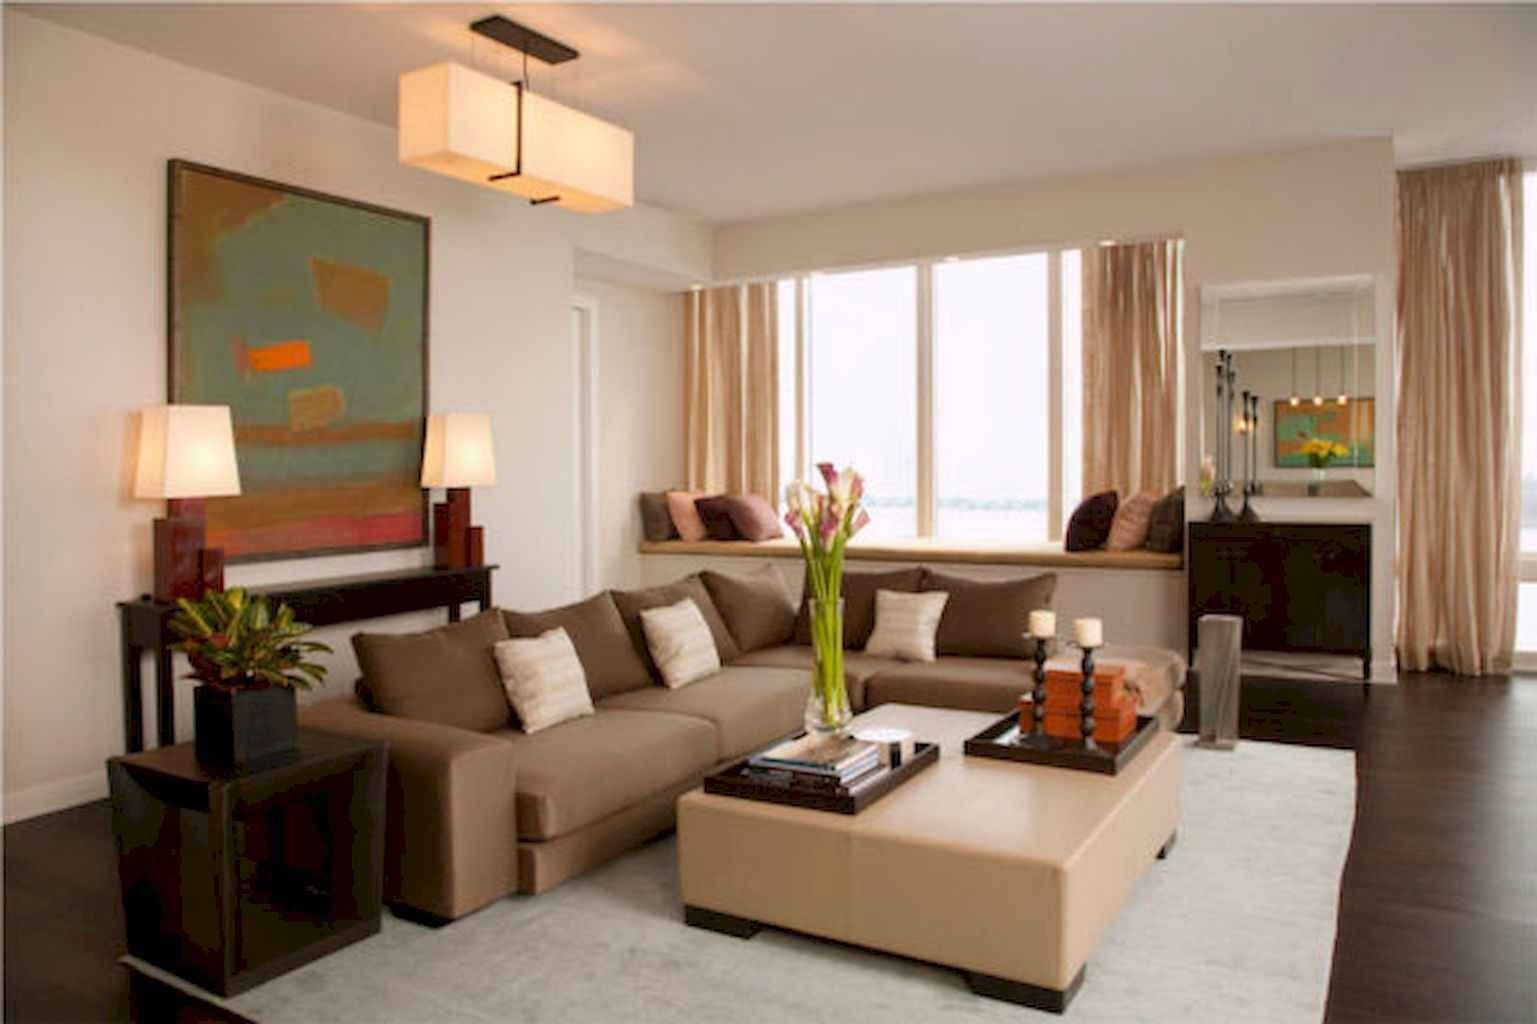 35 Best Asian Living Room Decor Ideas And Remodel Small H